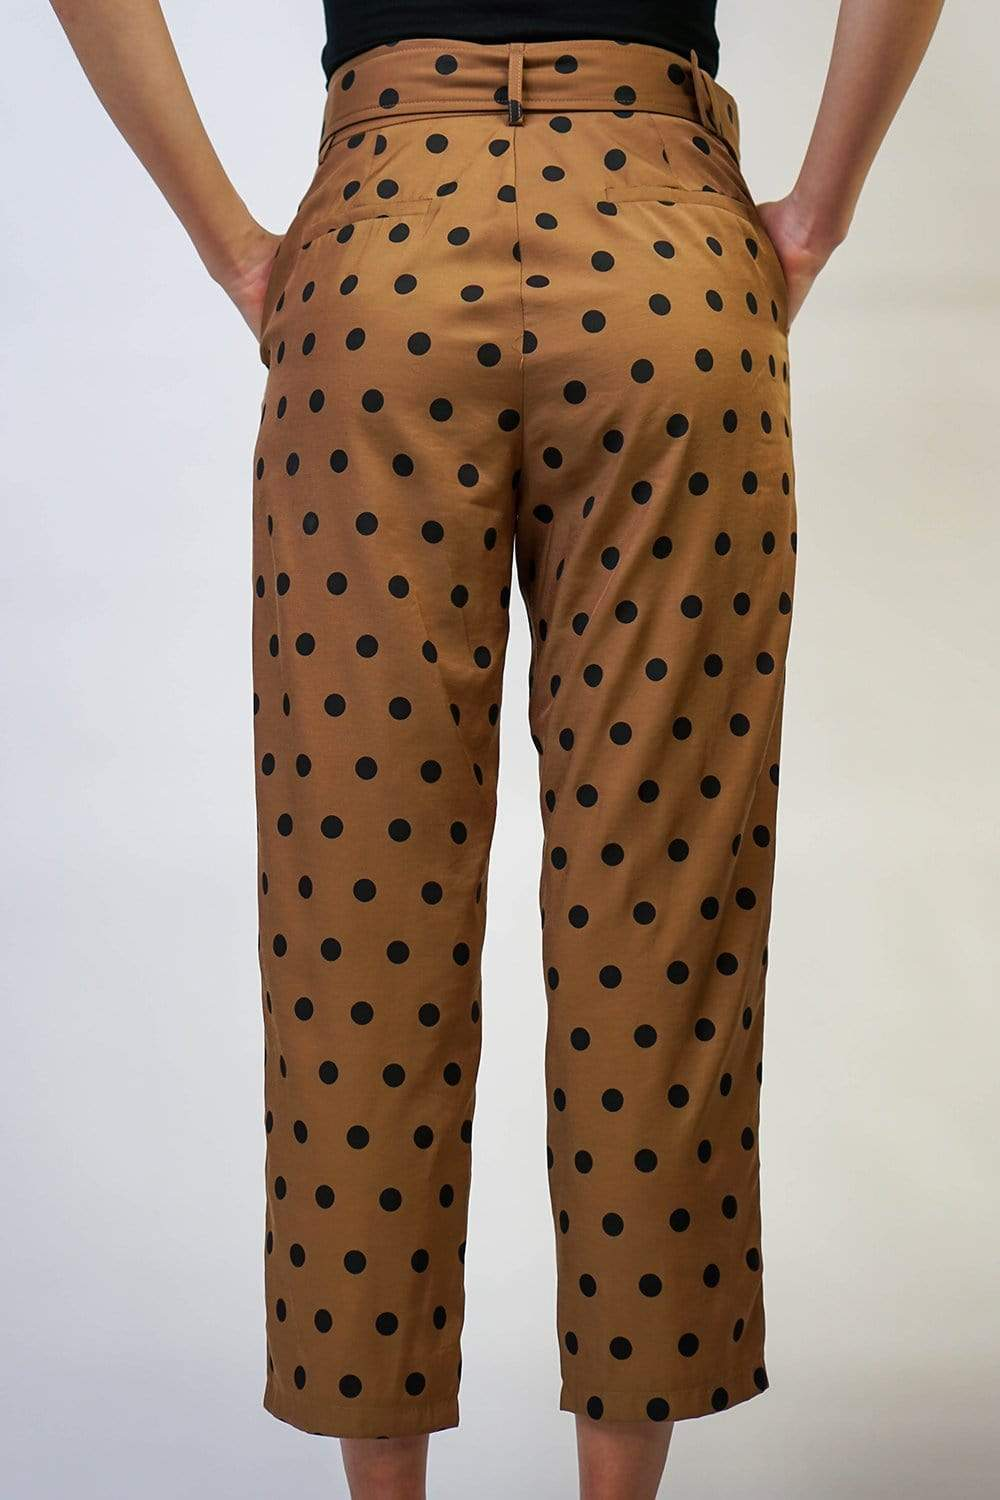 PANTS Audrey Polka Dot Pants - Chloe Dao